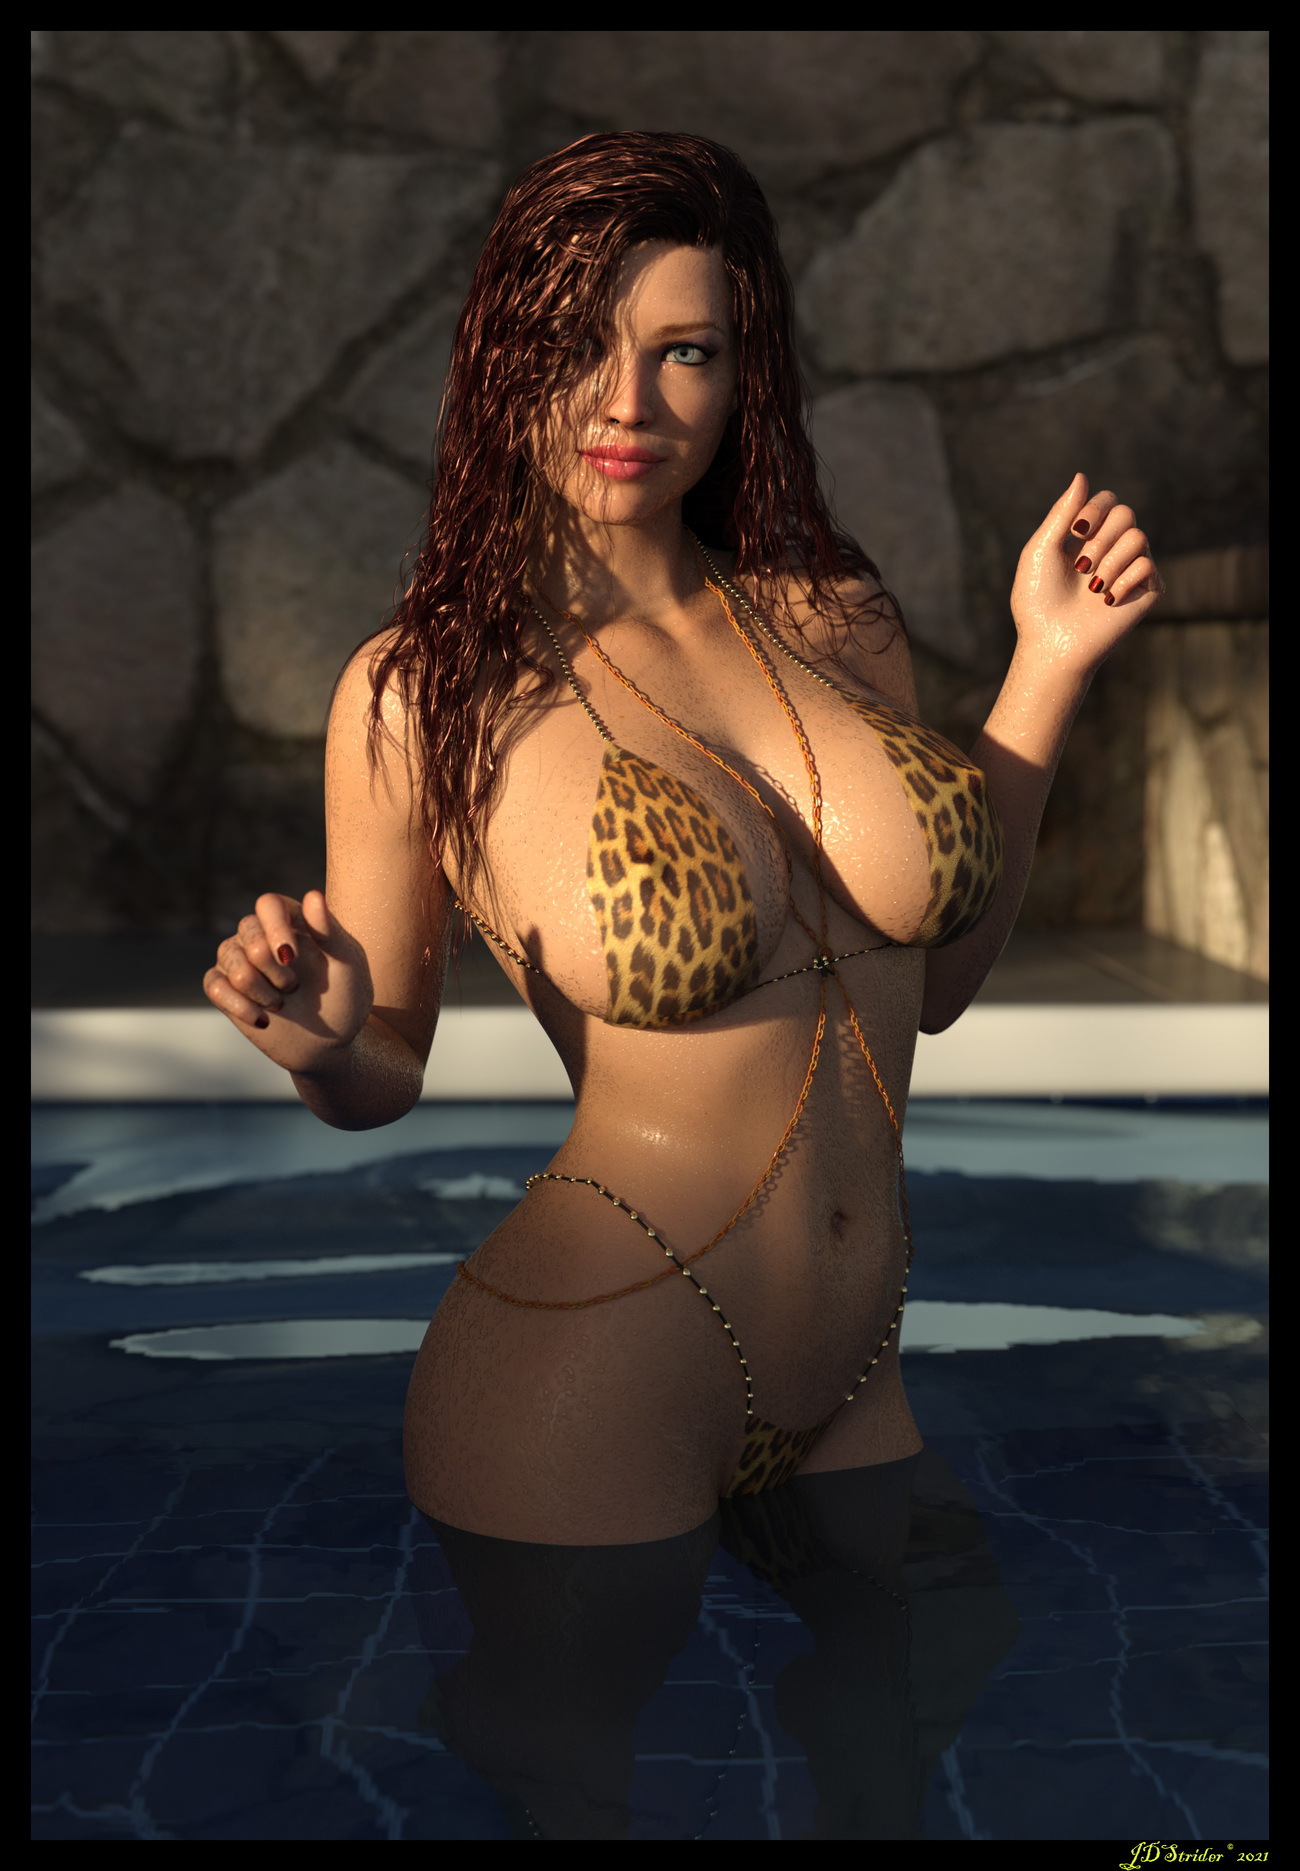 Paris - Wet Leopard by jdstrider